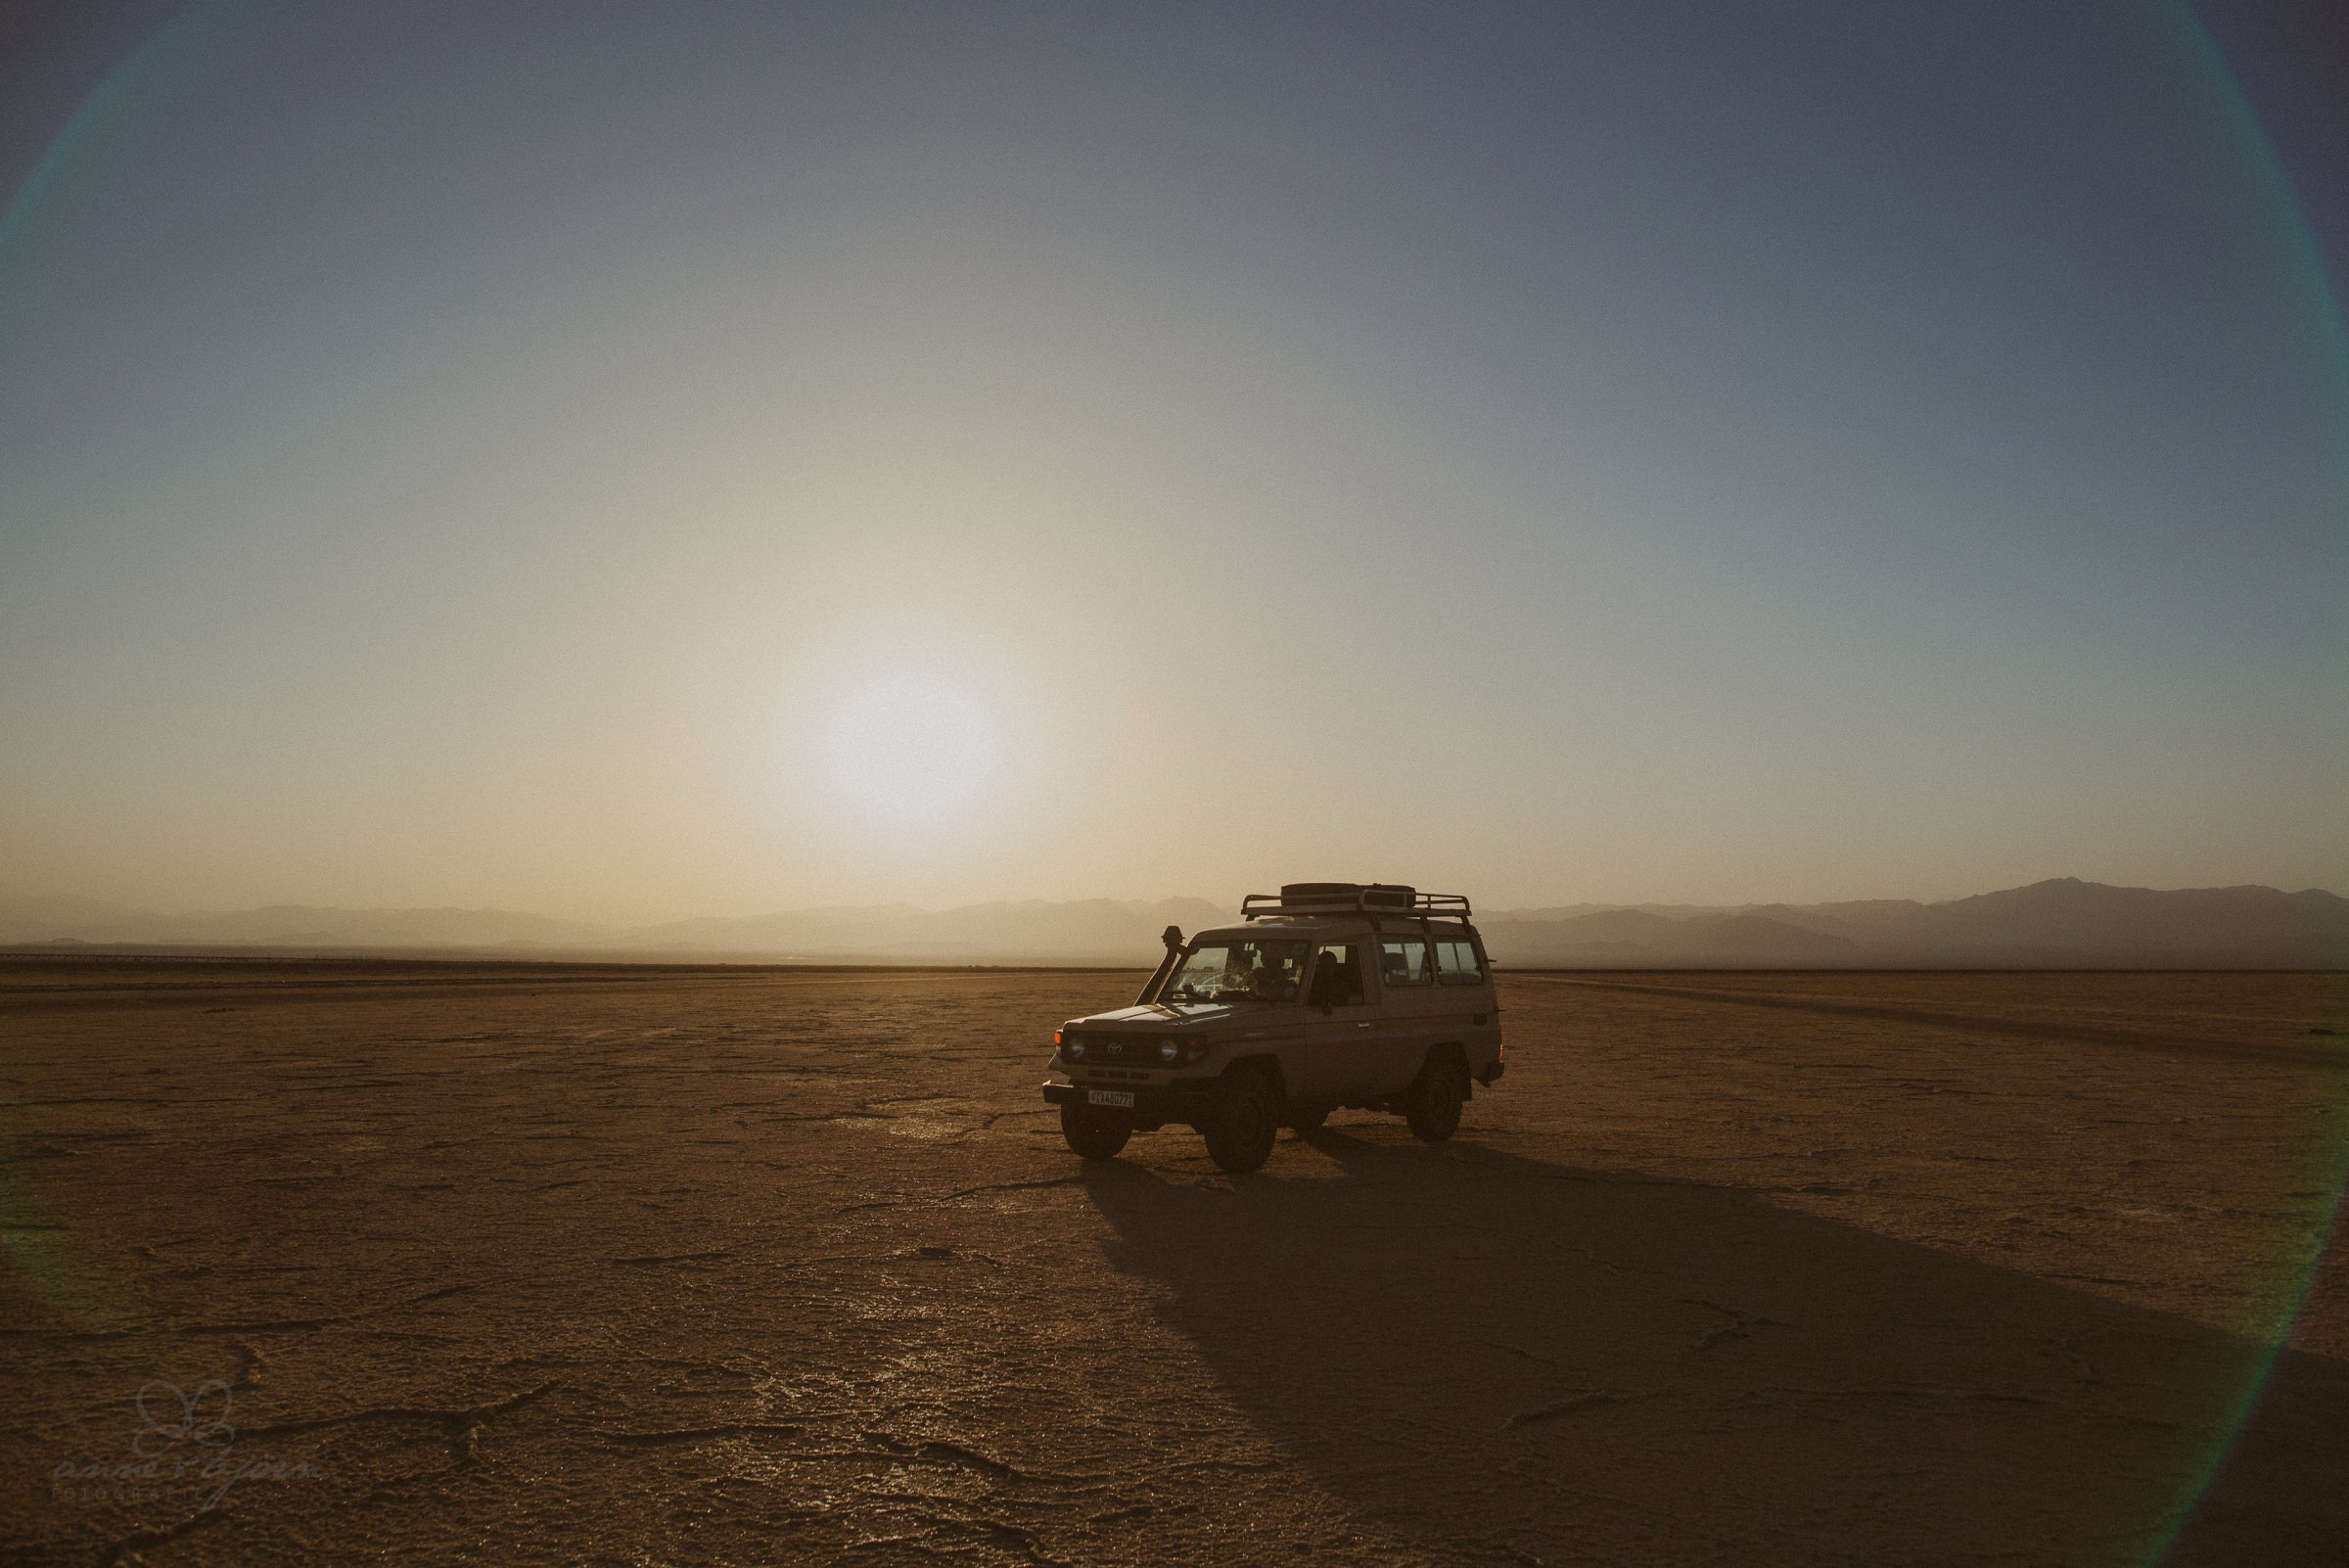 Jeep, Roadtrip, Backpacker Africa, Afrika, Sonnenuntergang, Sunset